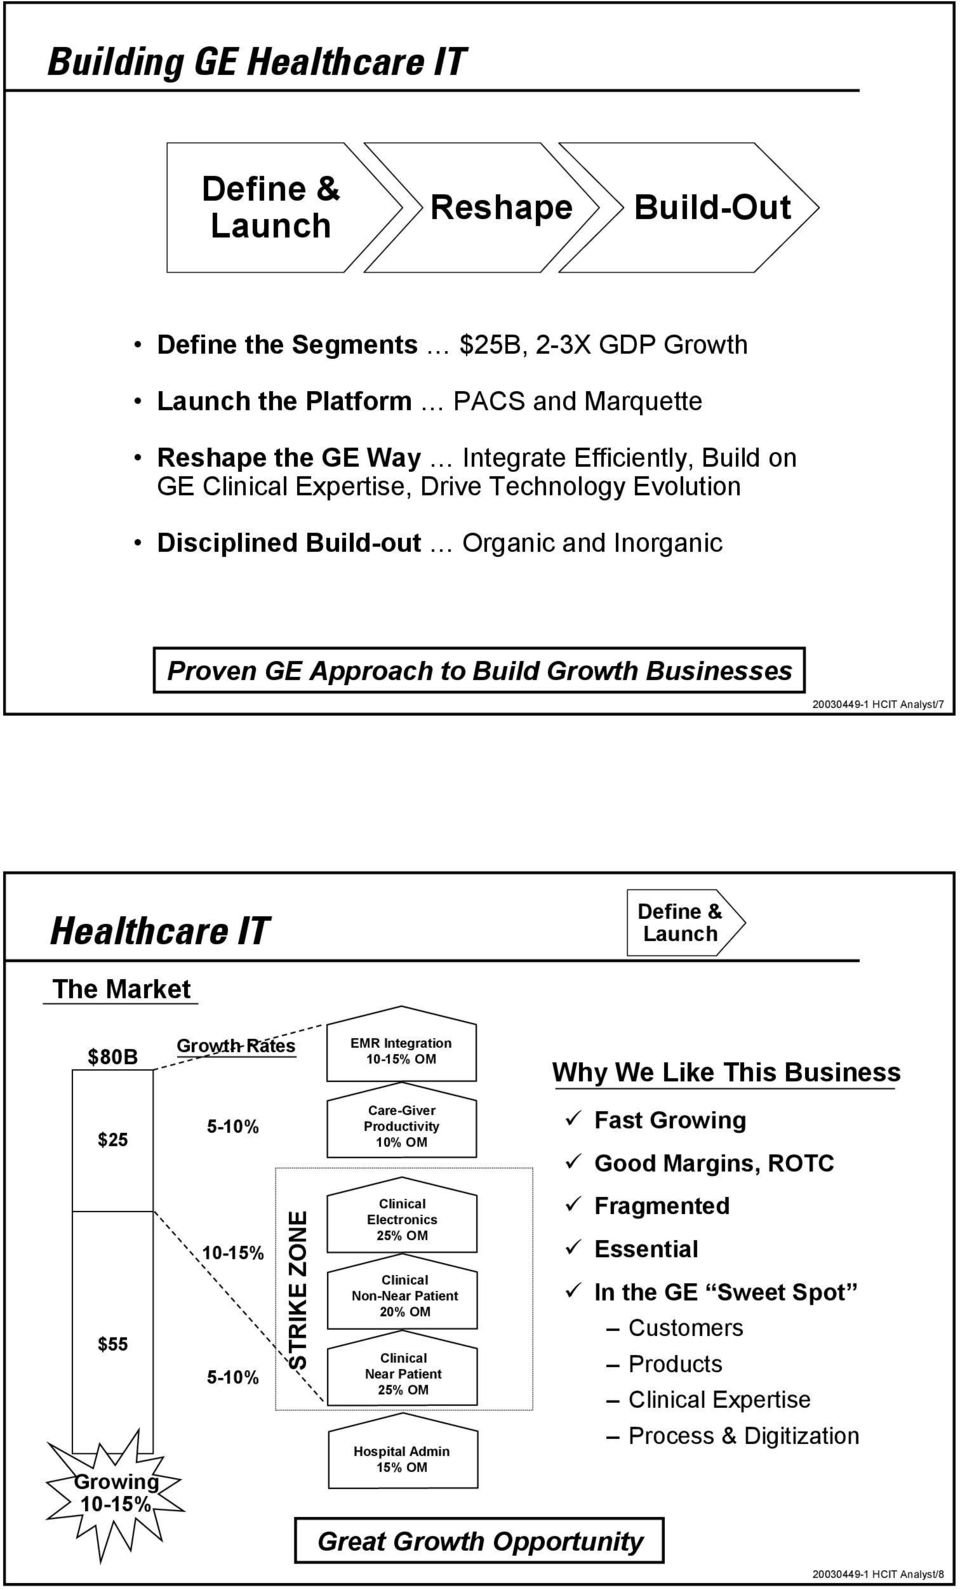 We Like This Business $25 $55 Growing 10-15% 5-10% 10-15% 5-10% STRIKE ZONE Care-Giver Productivity 10% OM Clinical Electronics 25% OM Clinical Non-Near Patient 20% OM Clinical Near Patient 25% OM